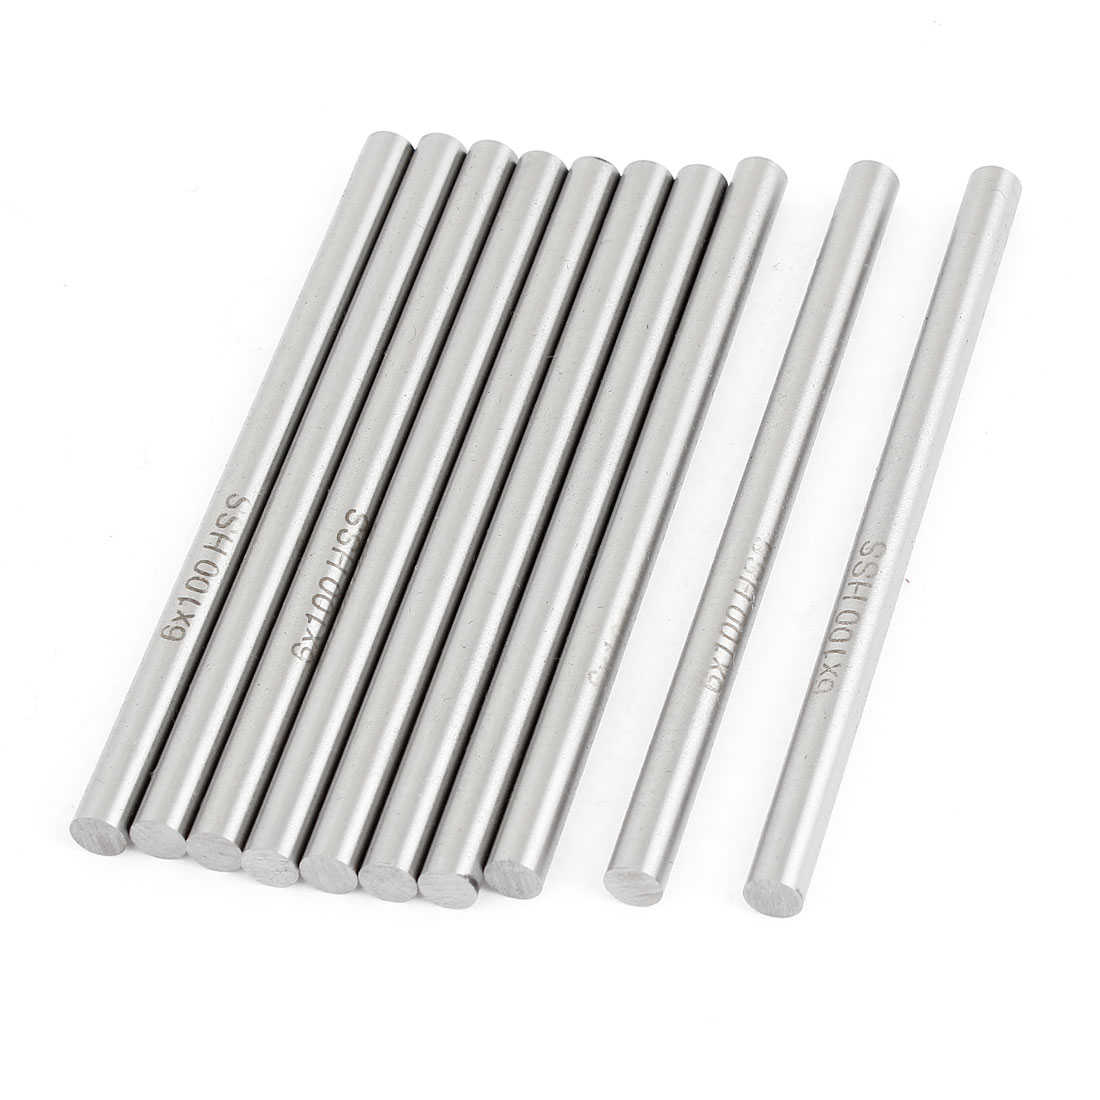 Unique Bargains 6mm x 100mm HSS Graving Tool Round Turning Lathe Carbide Bars Stick 10x